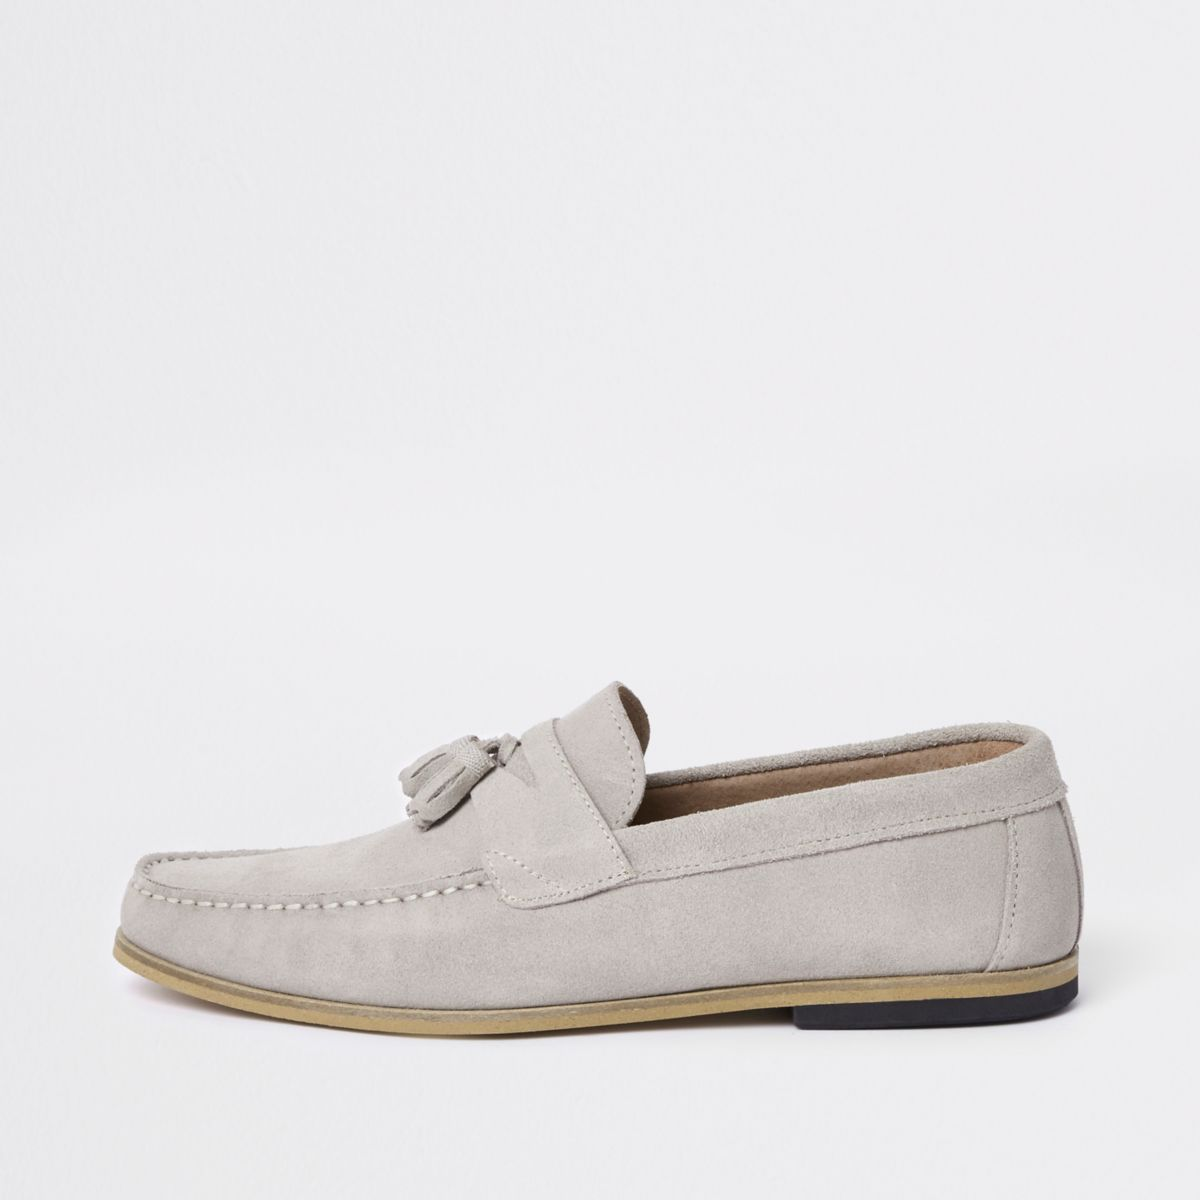 River Island Suede Loafer With Tassels In Ice Grey free shipping best store to get rMv9shynF